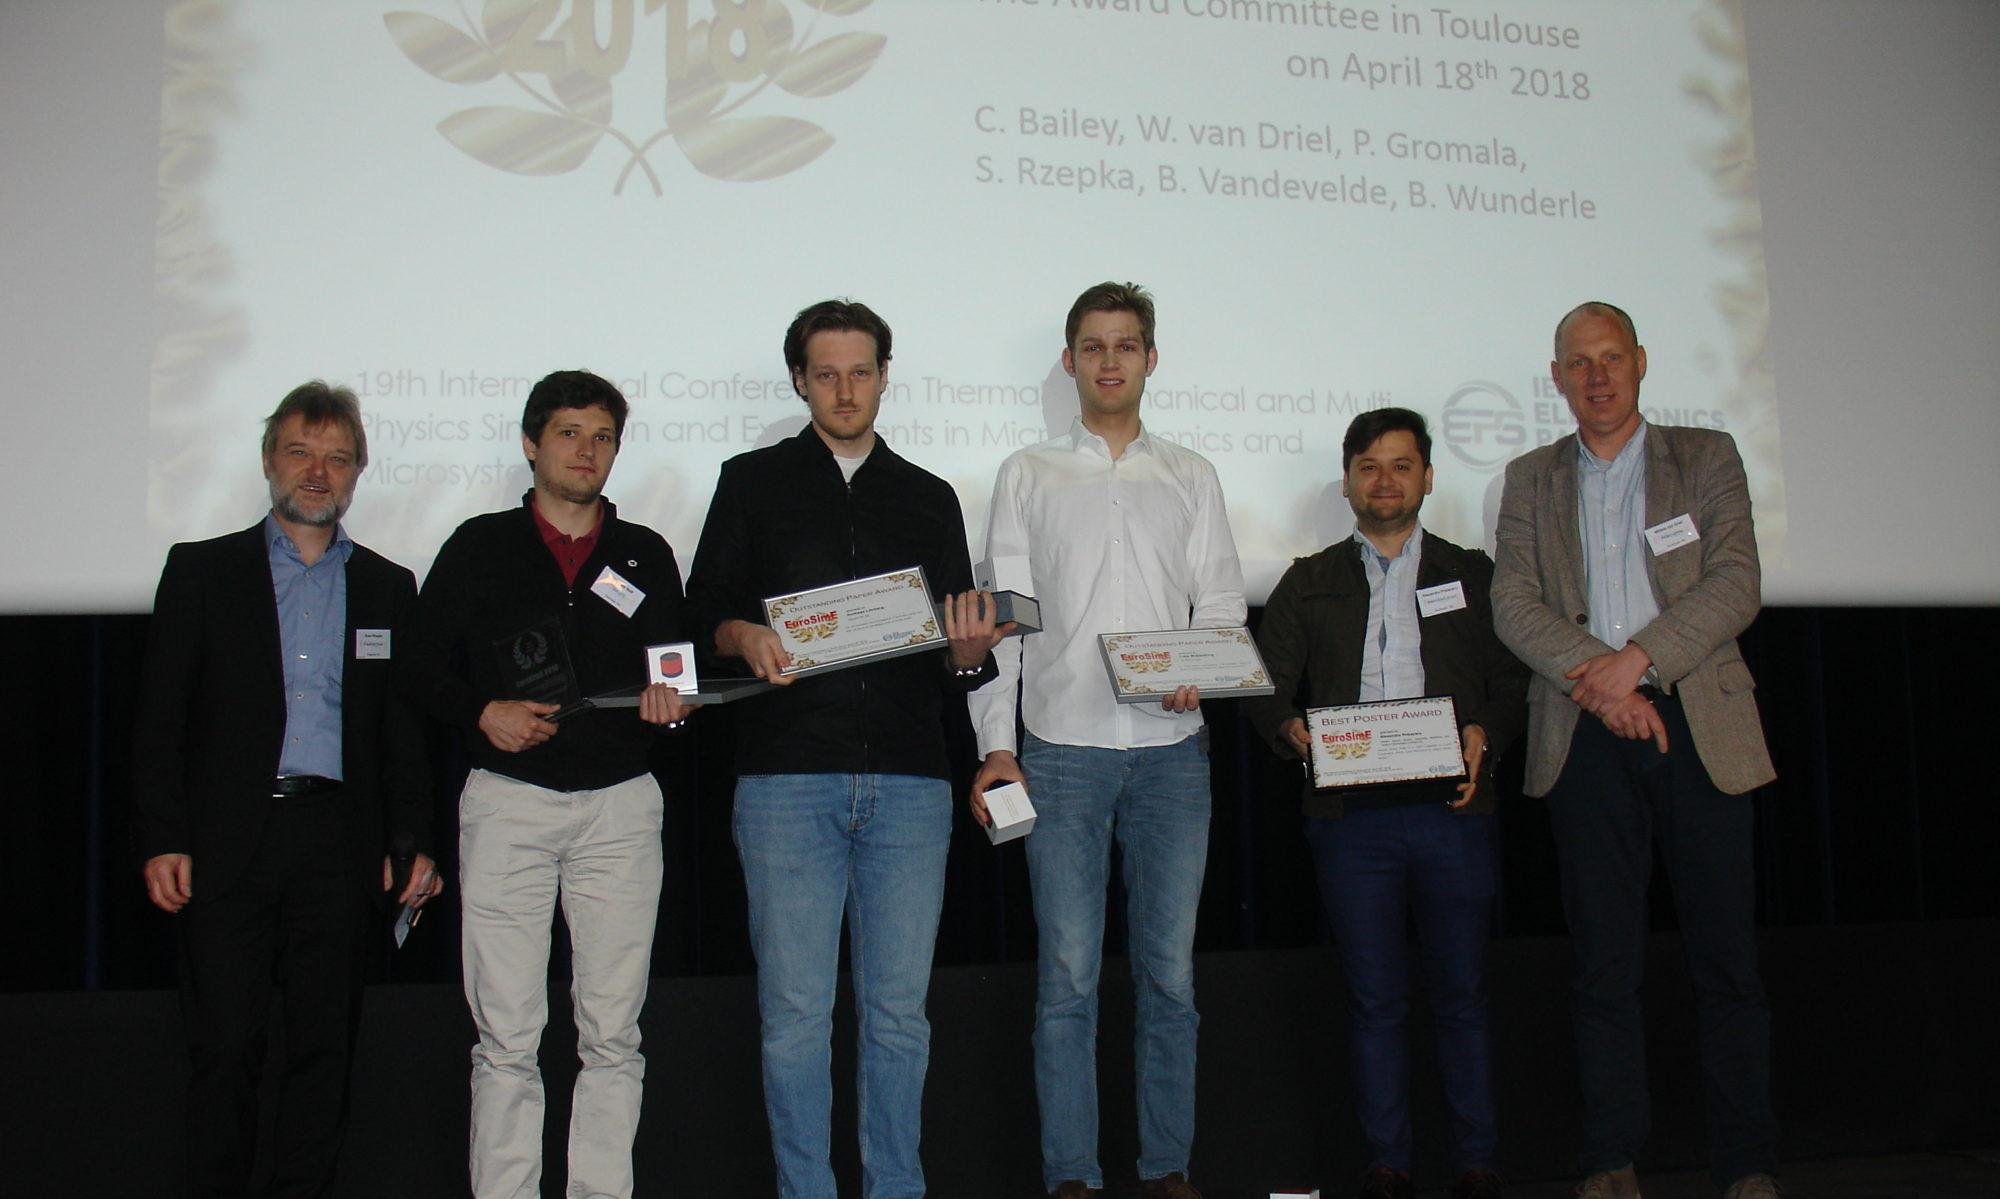 2019: 20th EuroSimE in Hannover, Germany